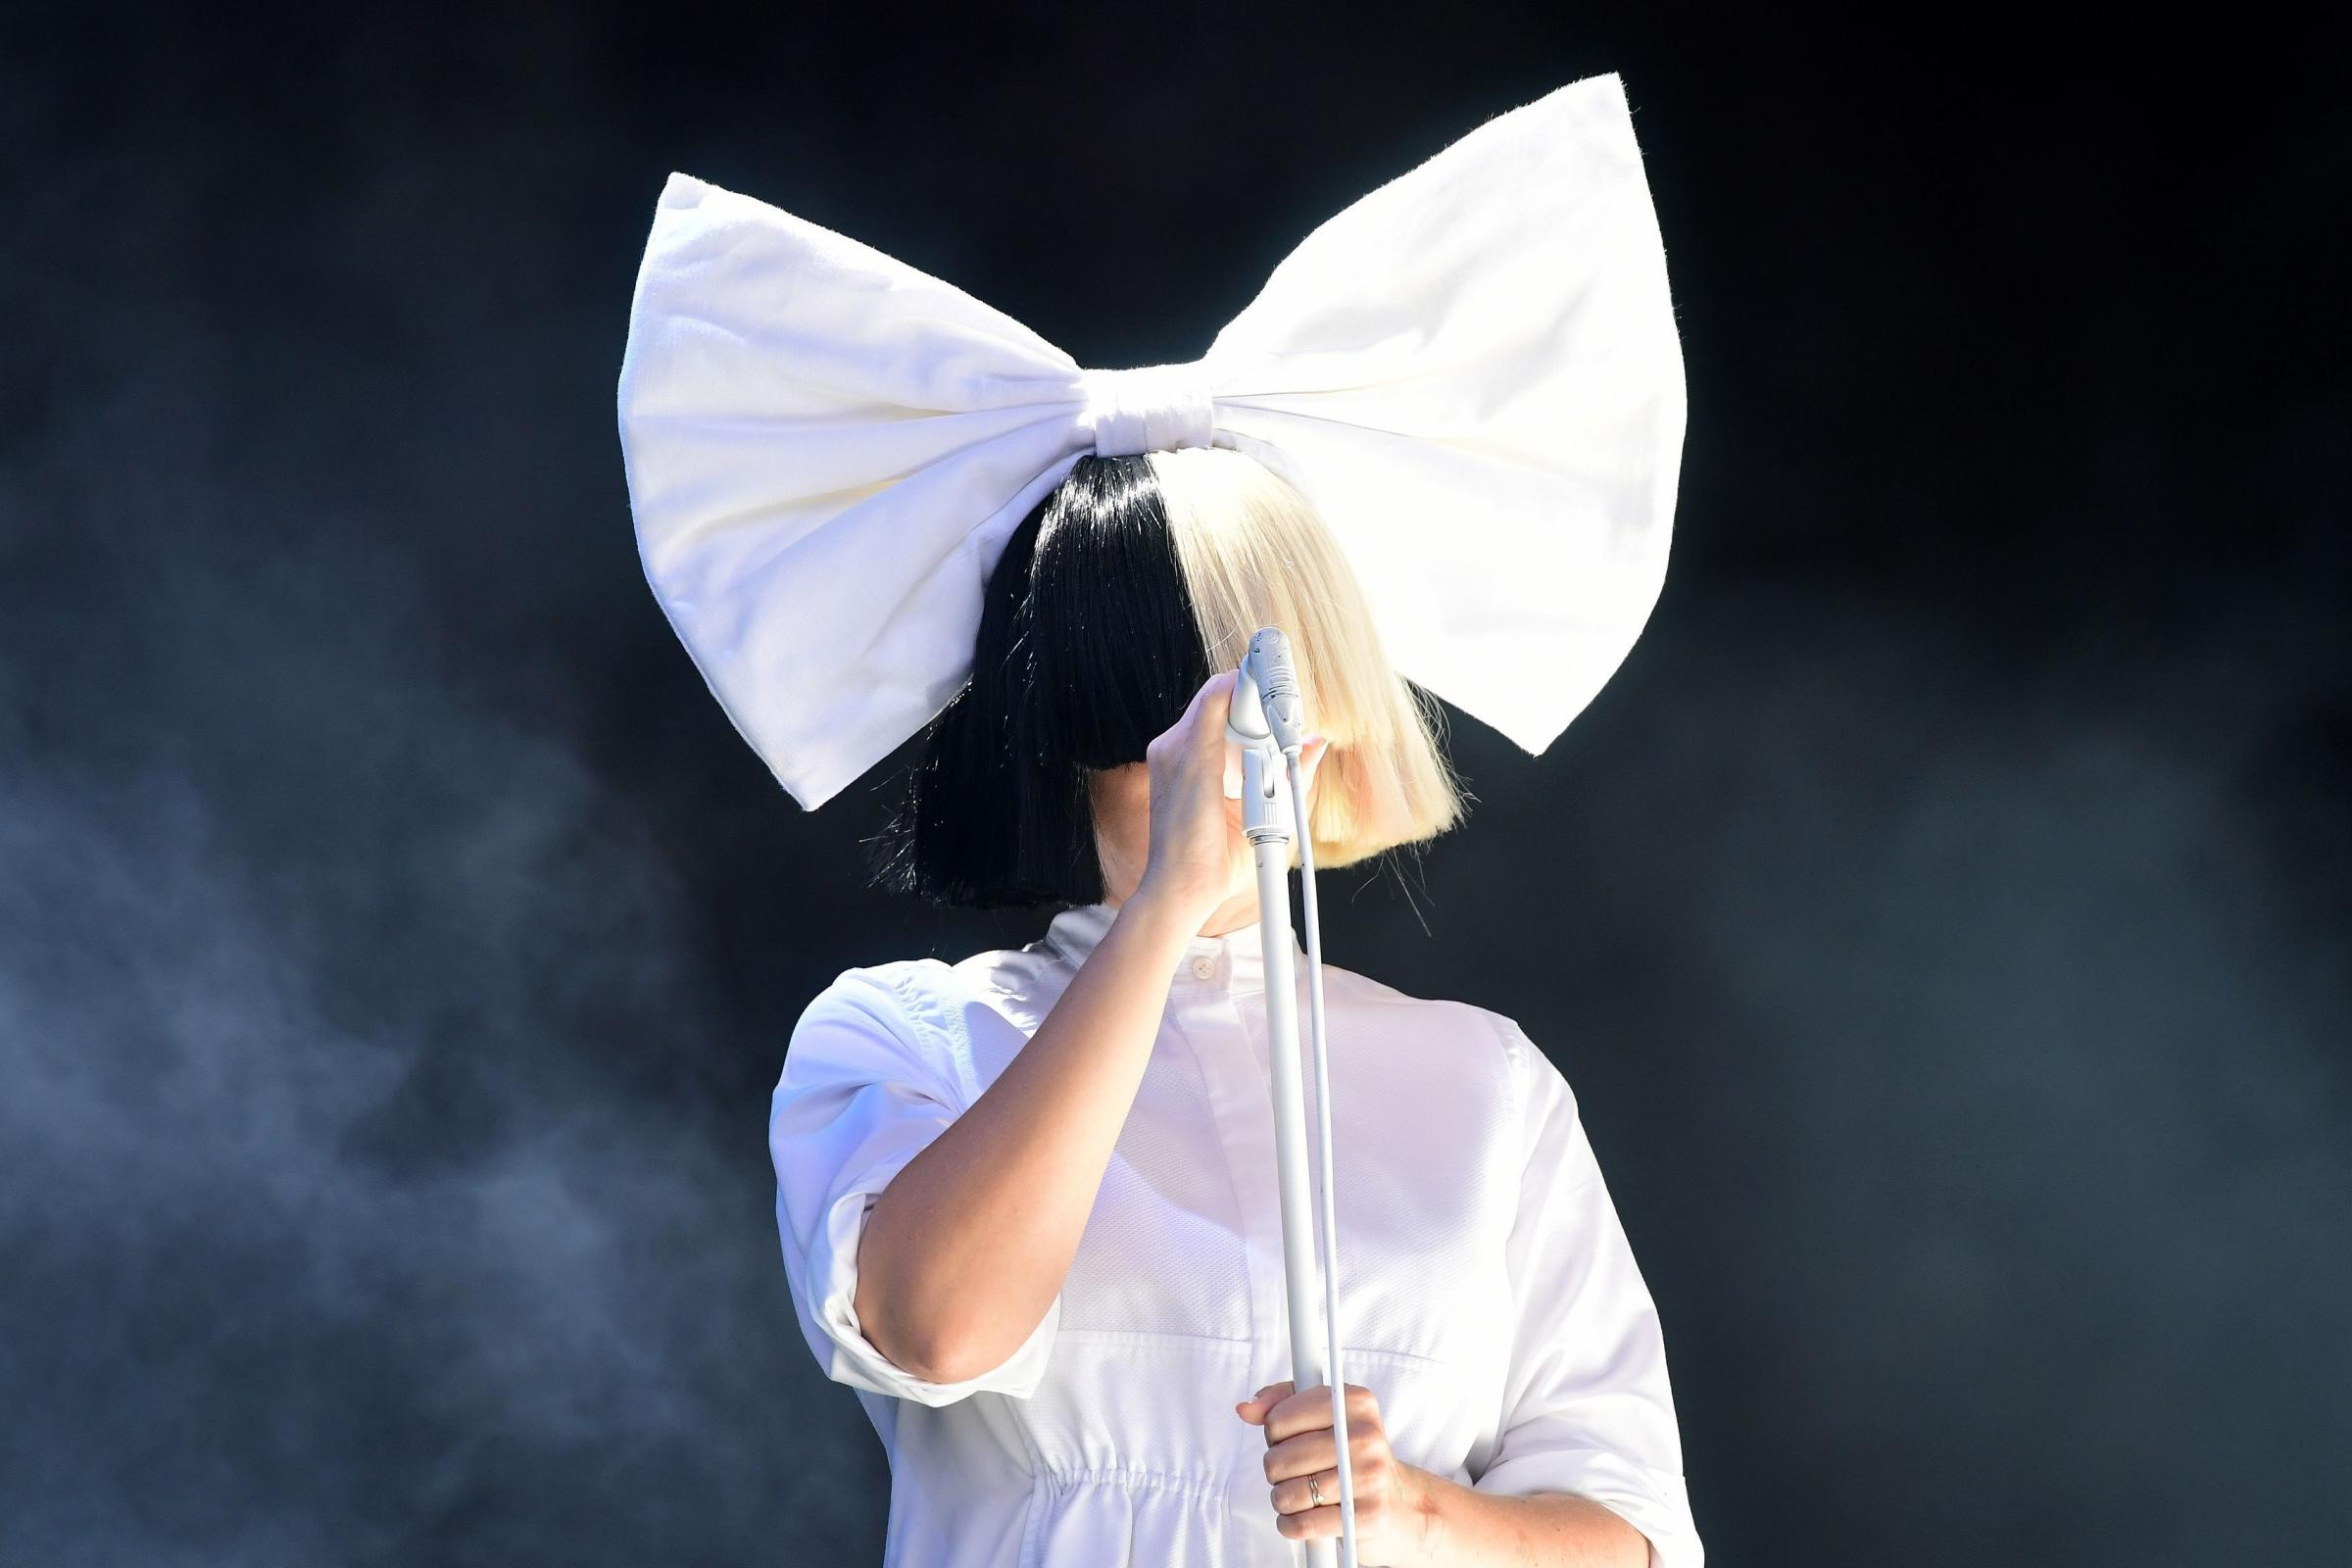 If she wants it to stop it stops – Sia defends working with Maddie Ziegler, 15 (Ian West/PA)